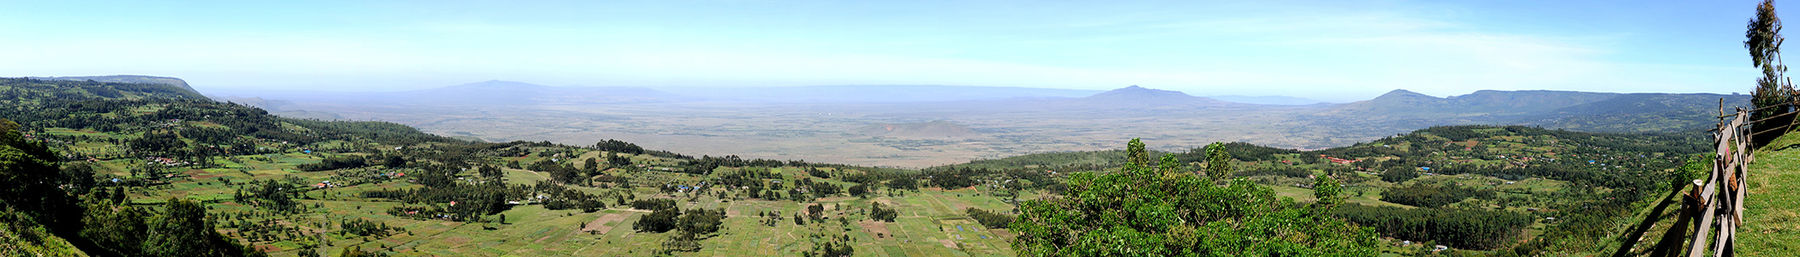 Great Rift Valley, Κένυα